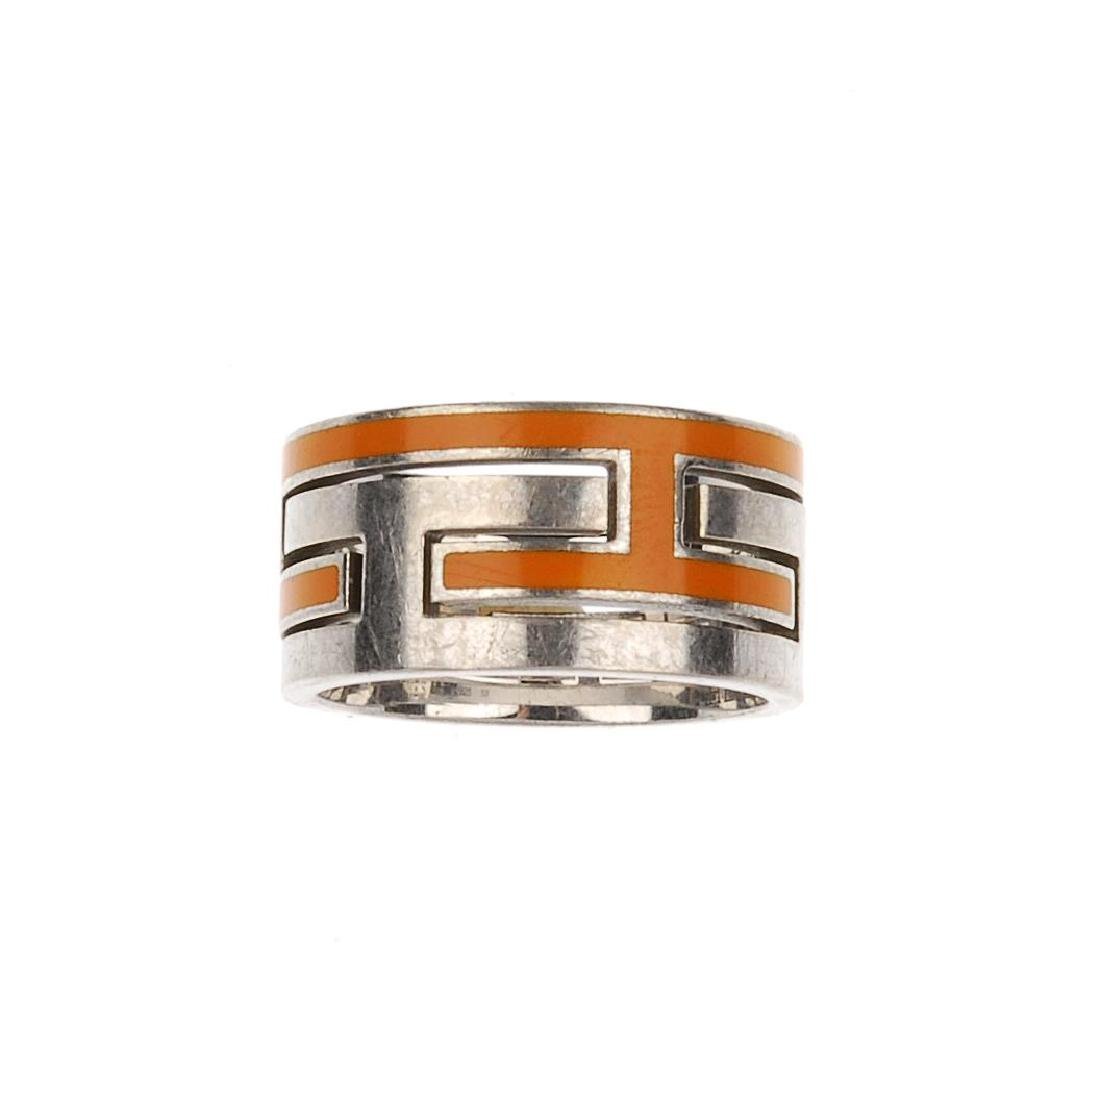 HERMÈS - a Move H ring. The silver-tone ring, designed